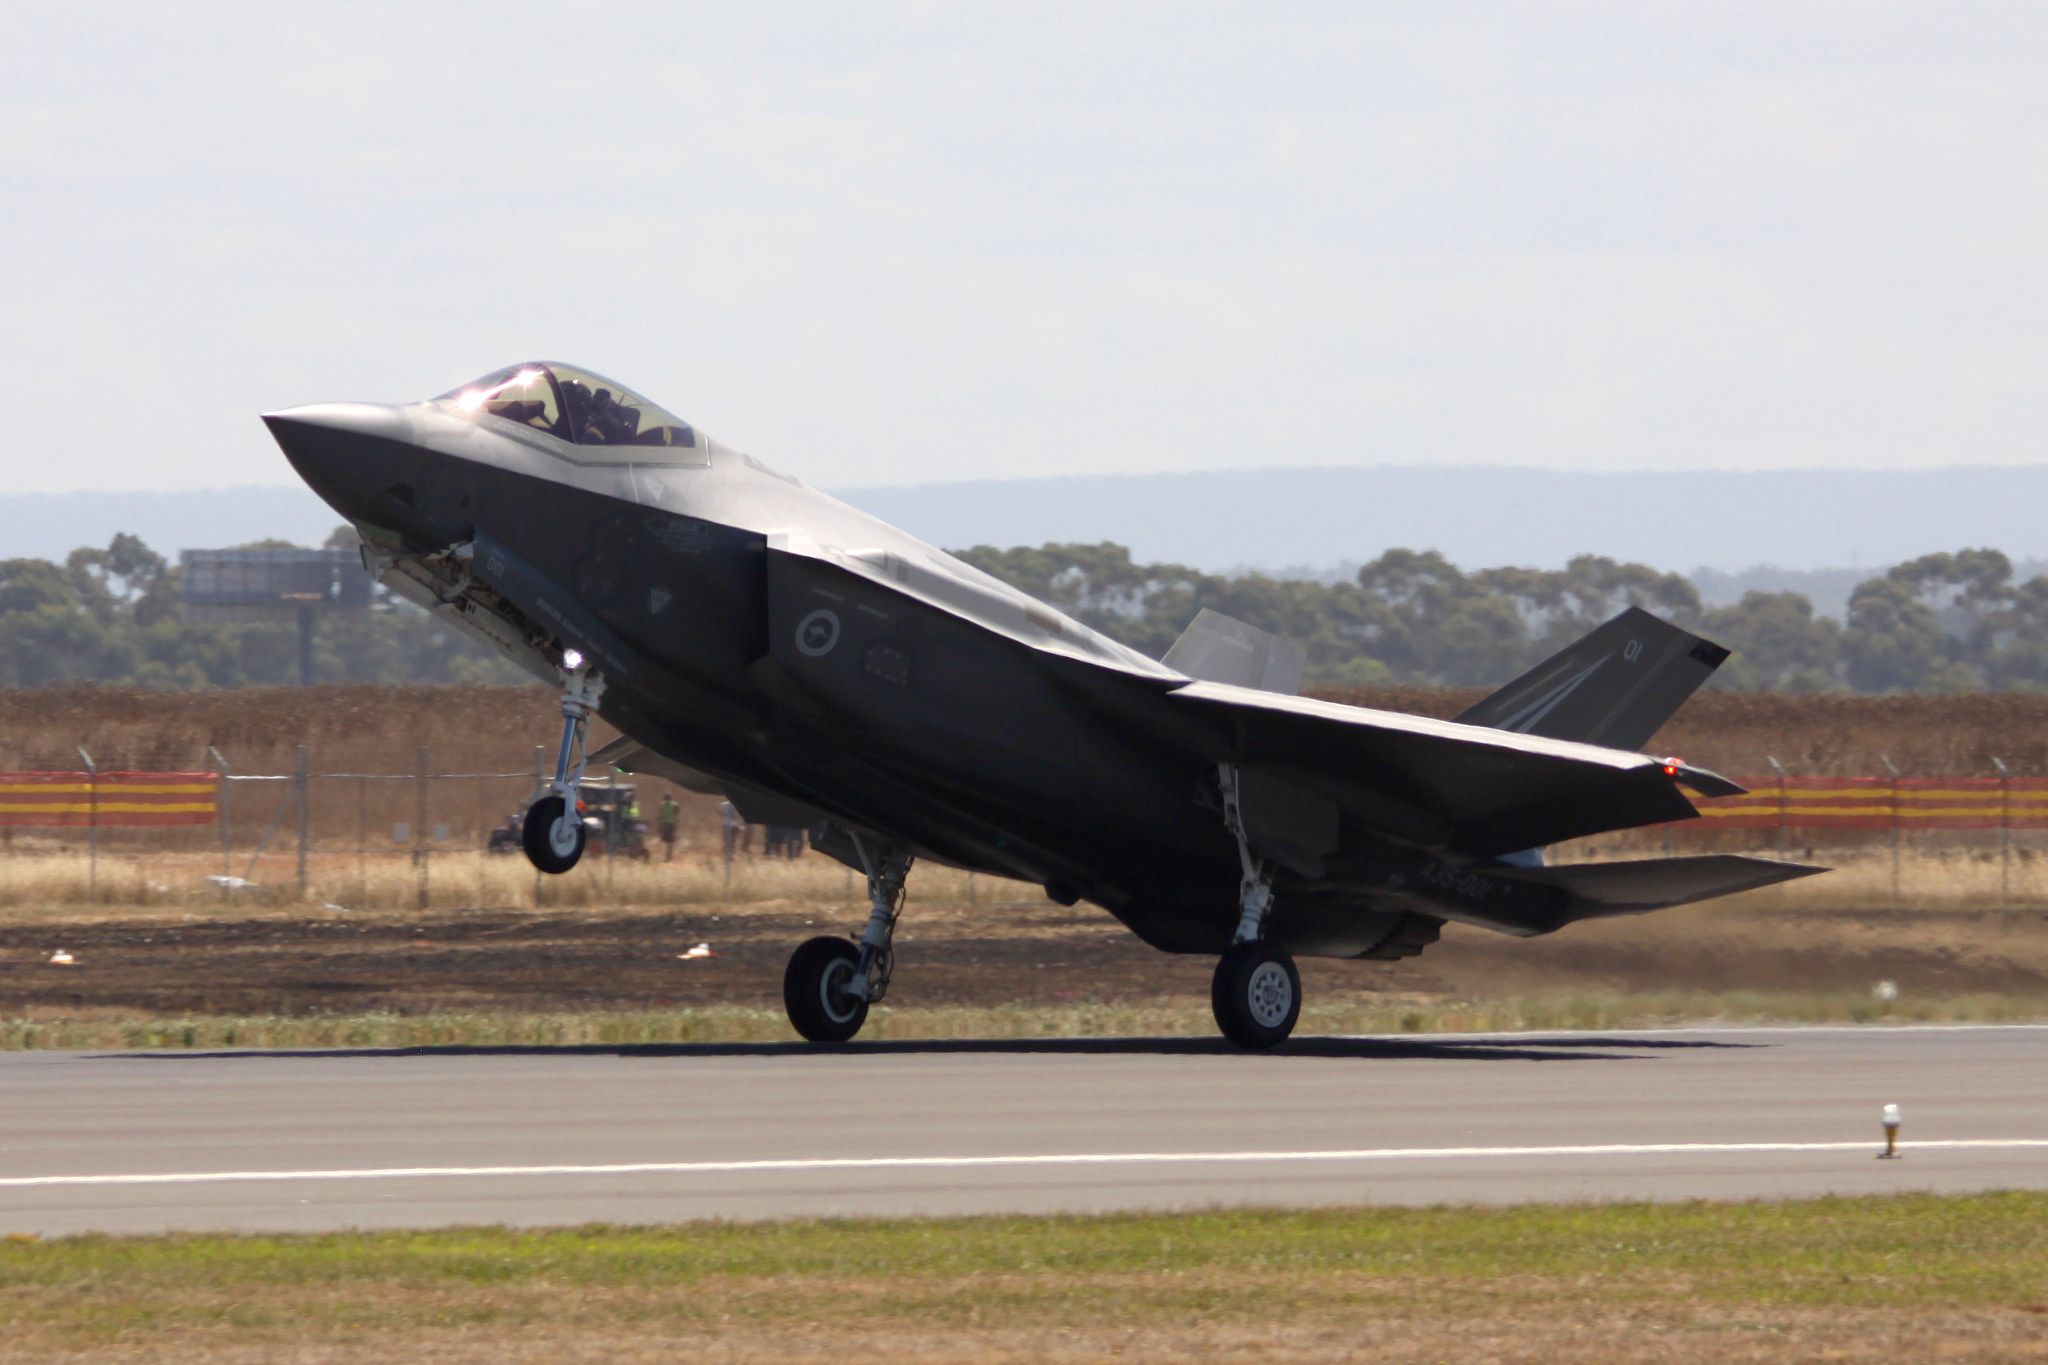 https://flic.kr/p/SFiCcm | F-35A | F-35A Lightning II A35-001 at the 2017 Australian International Airshow